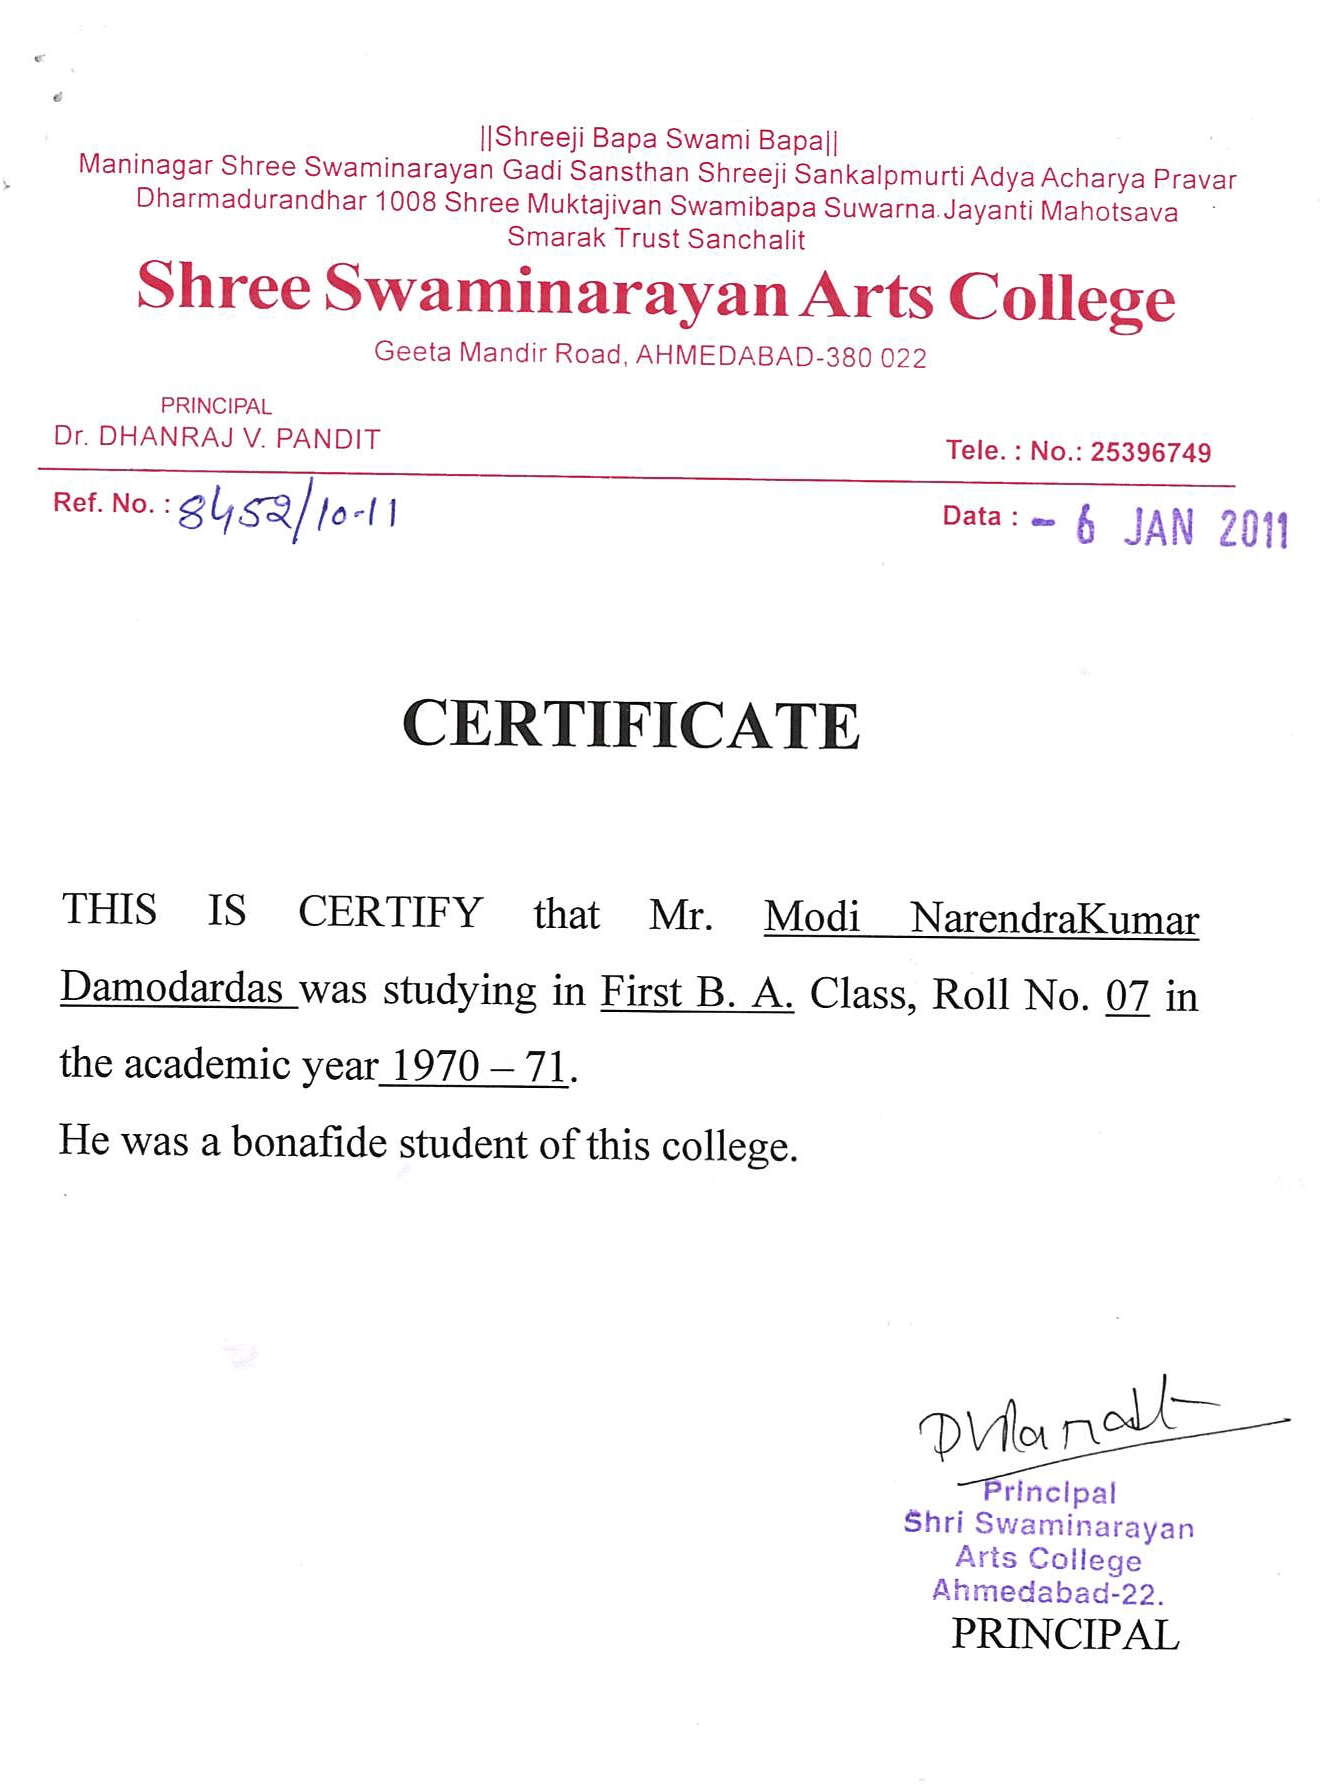 Document certifing Shri Narendra Modi as a student of Shree Swaminarayan Arts College